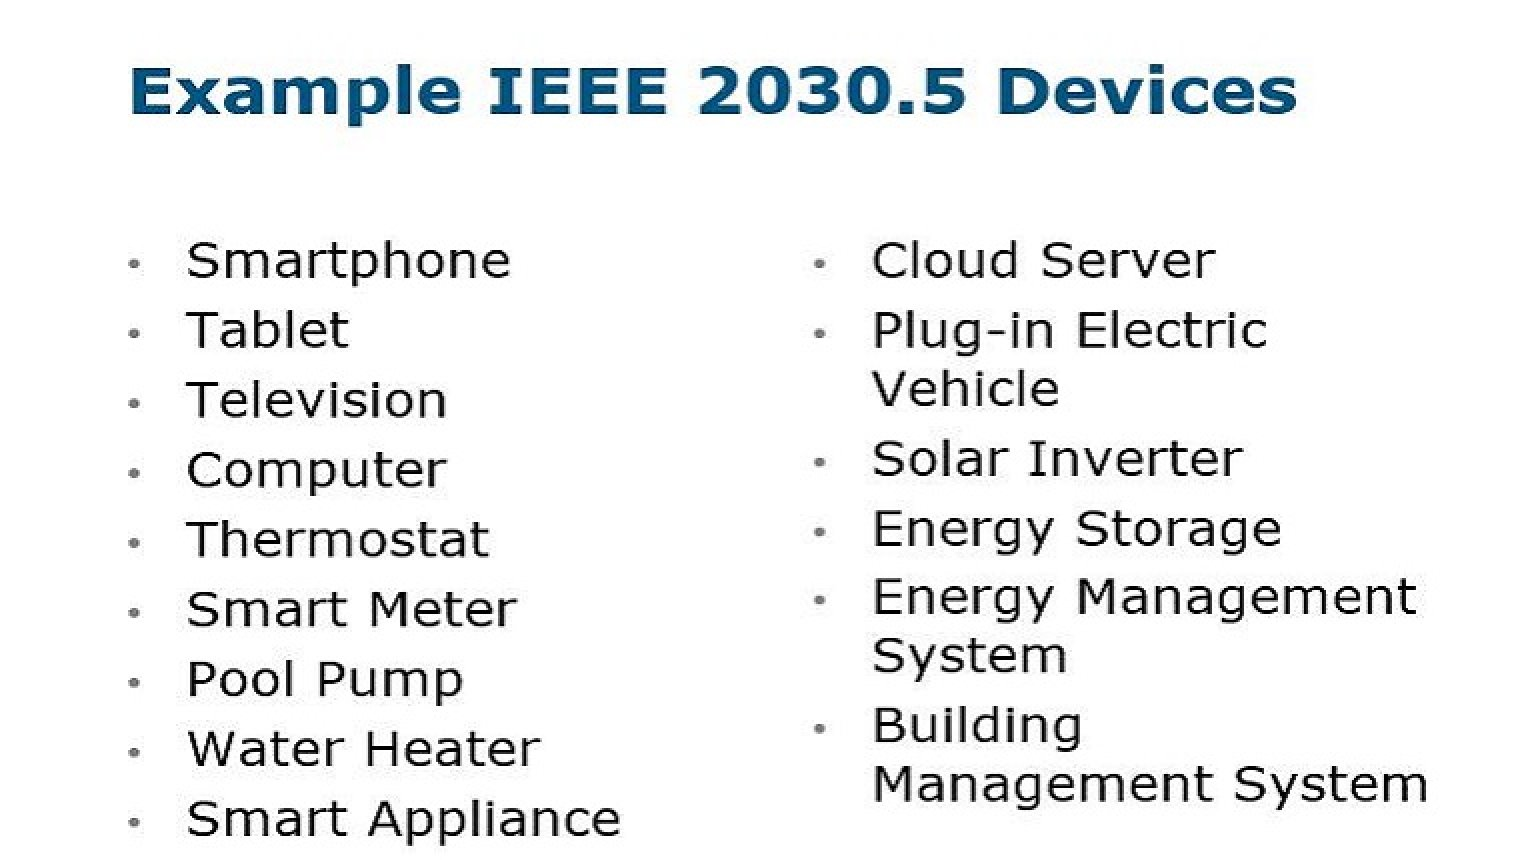 IEEE 2030.5 (Smart Energy Profile 2.0): An Overview and Applicability to Distributed Energy Resources (DER) presented by Dr. Robby Simpson